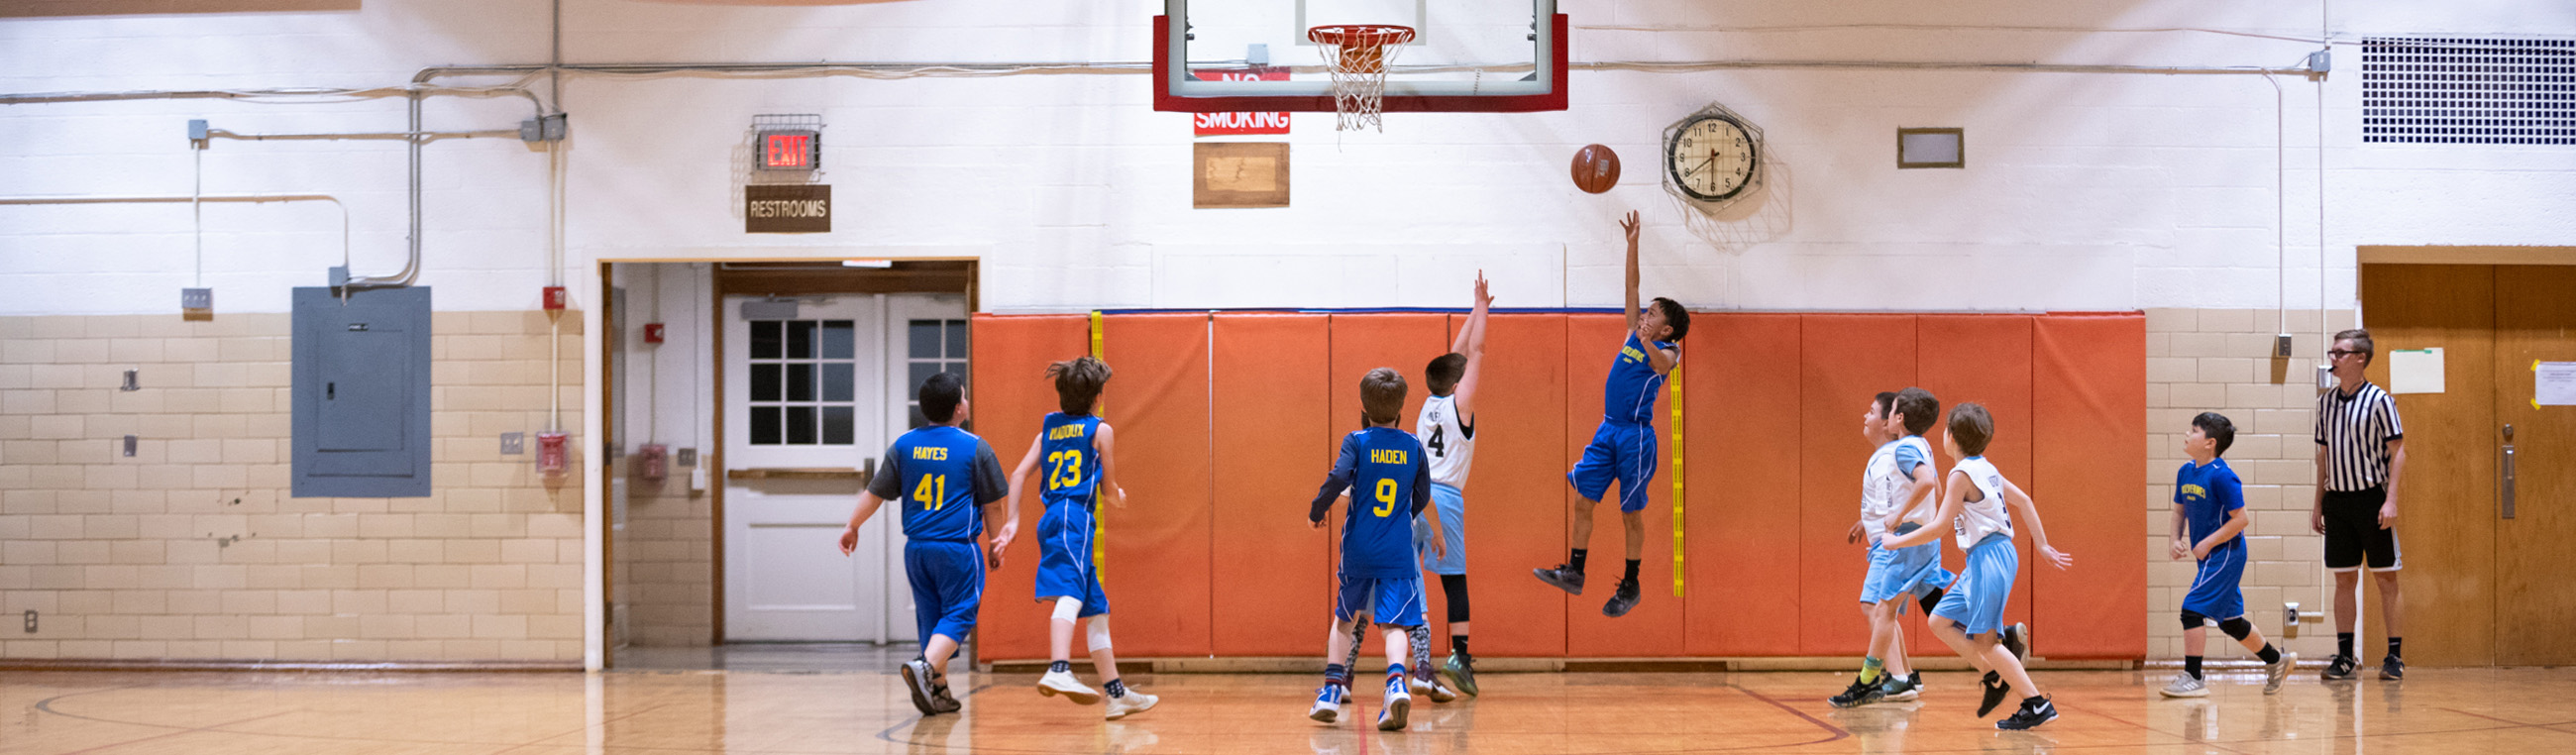 Kids playing youth basketball